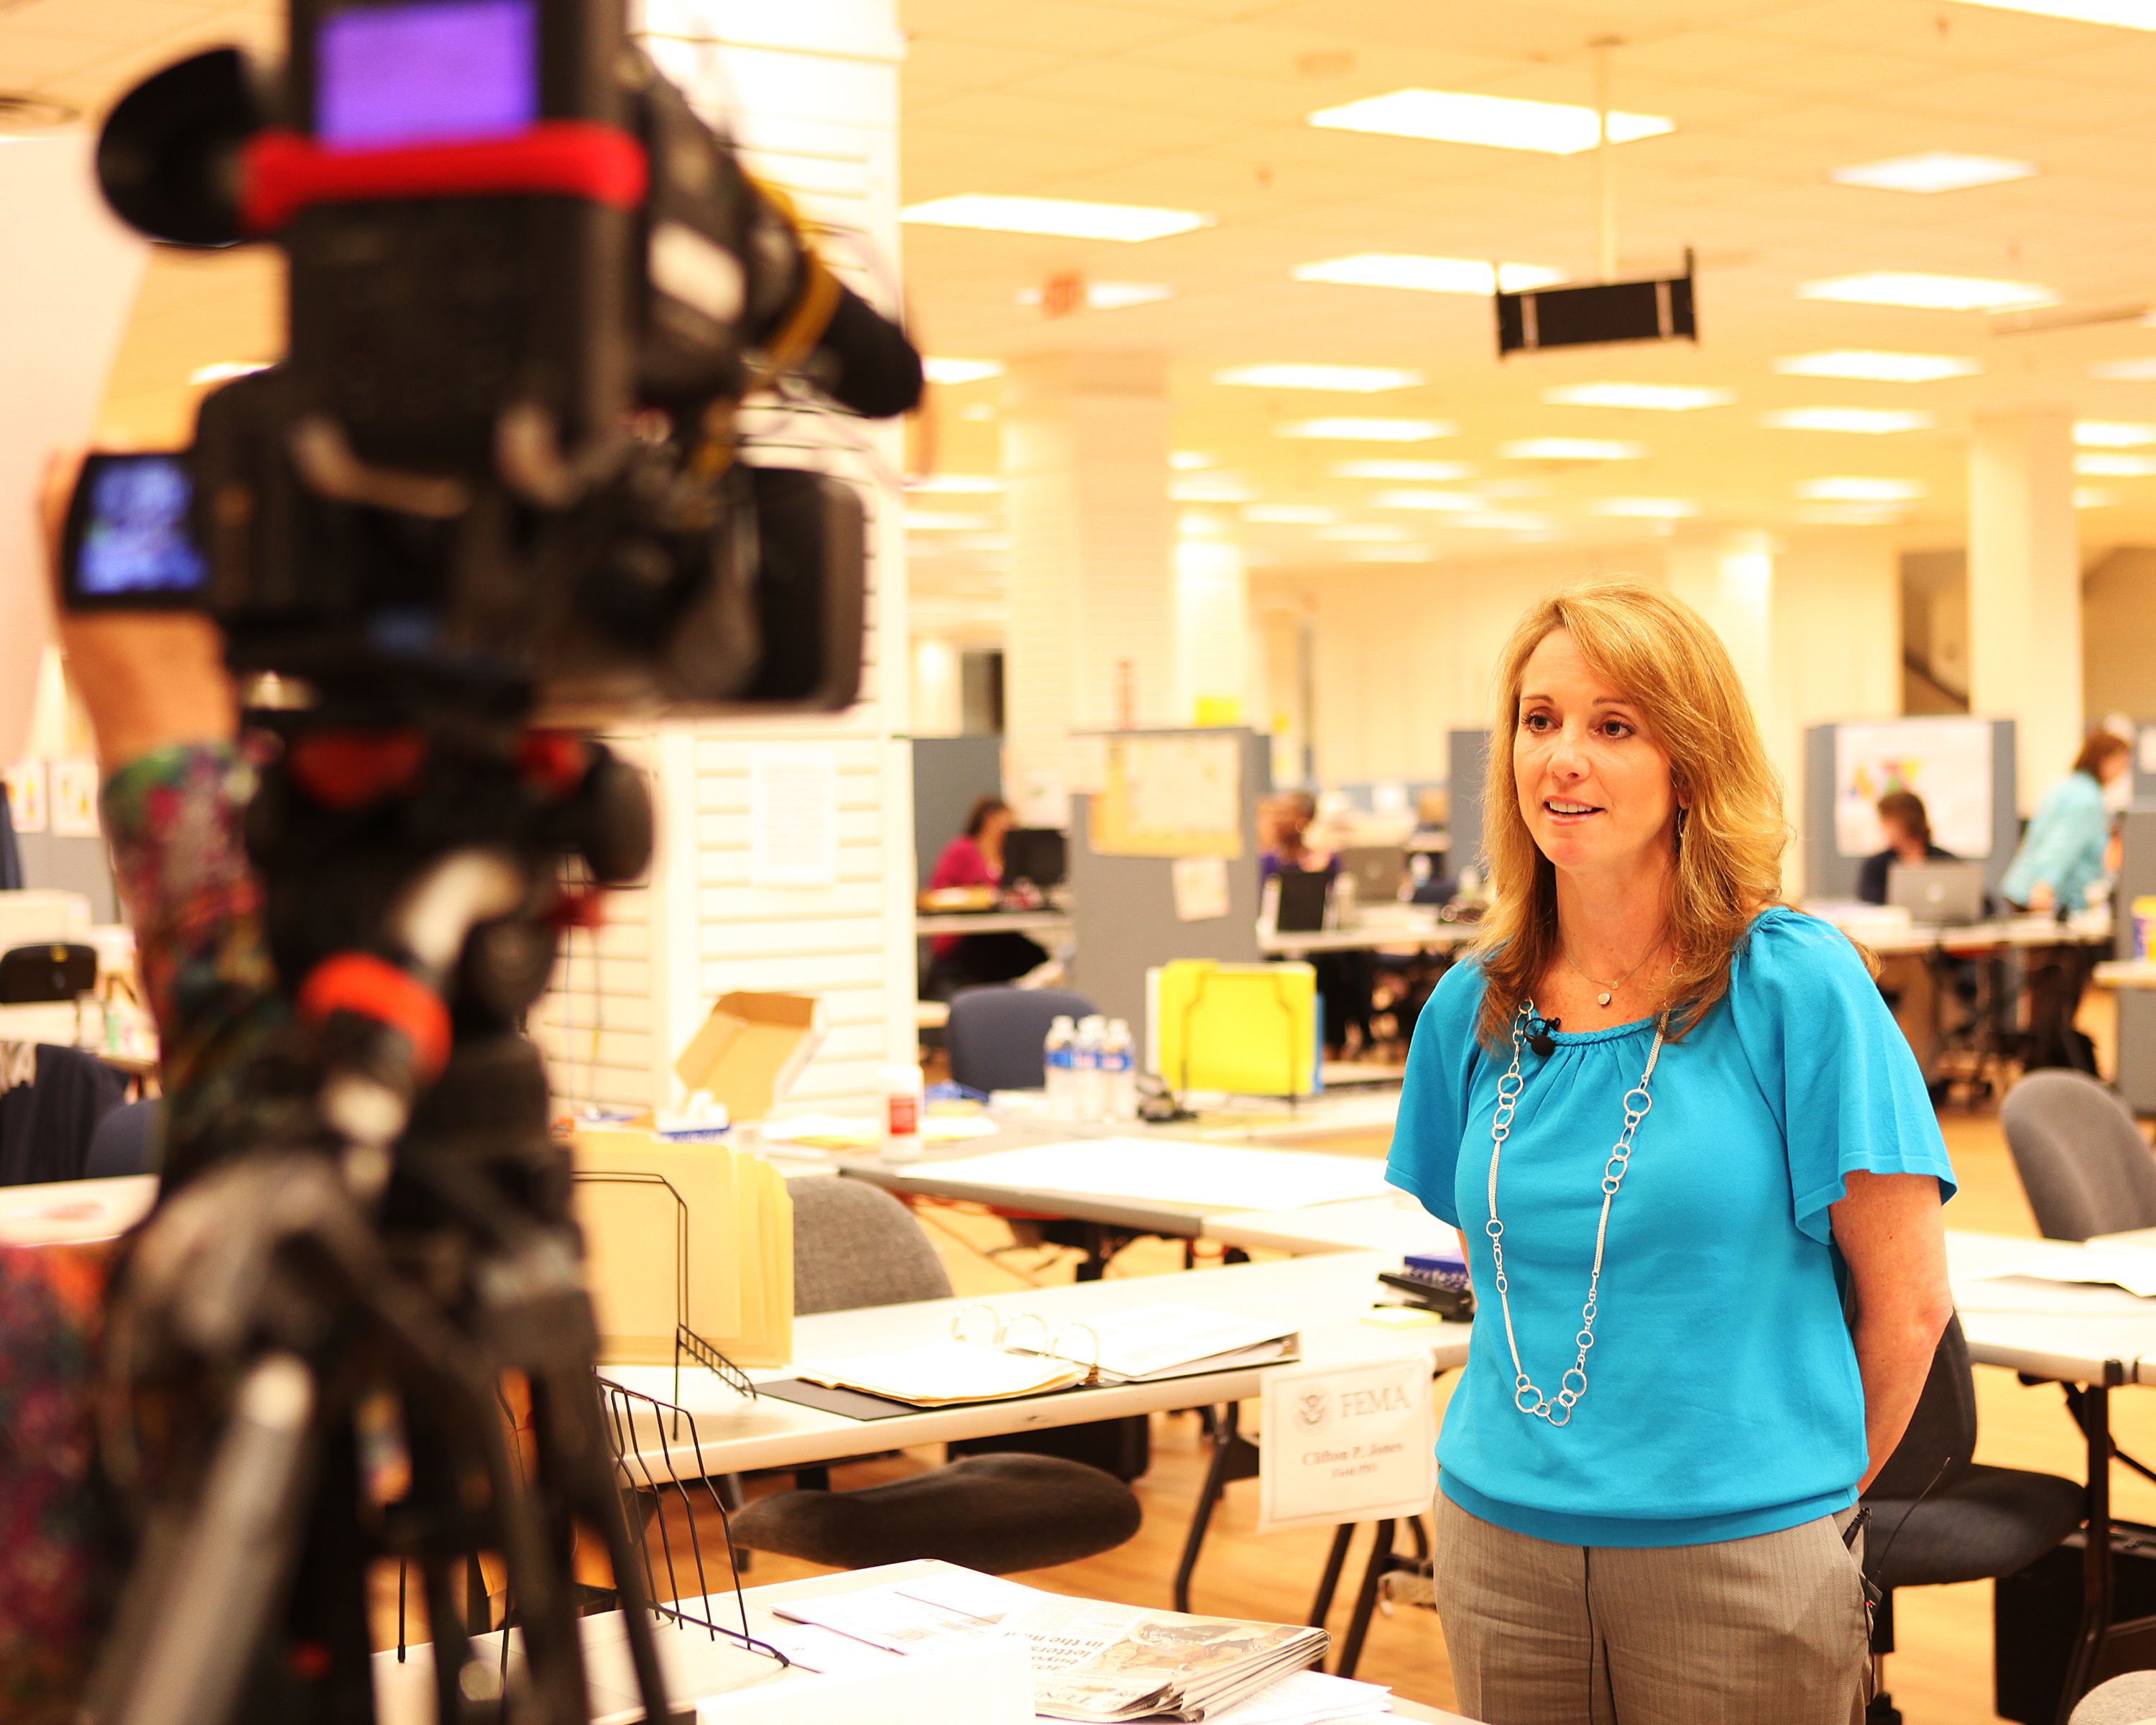 Staff based Video Production